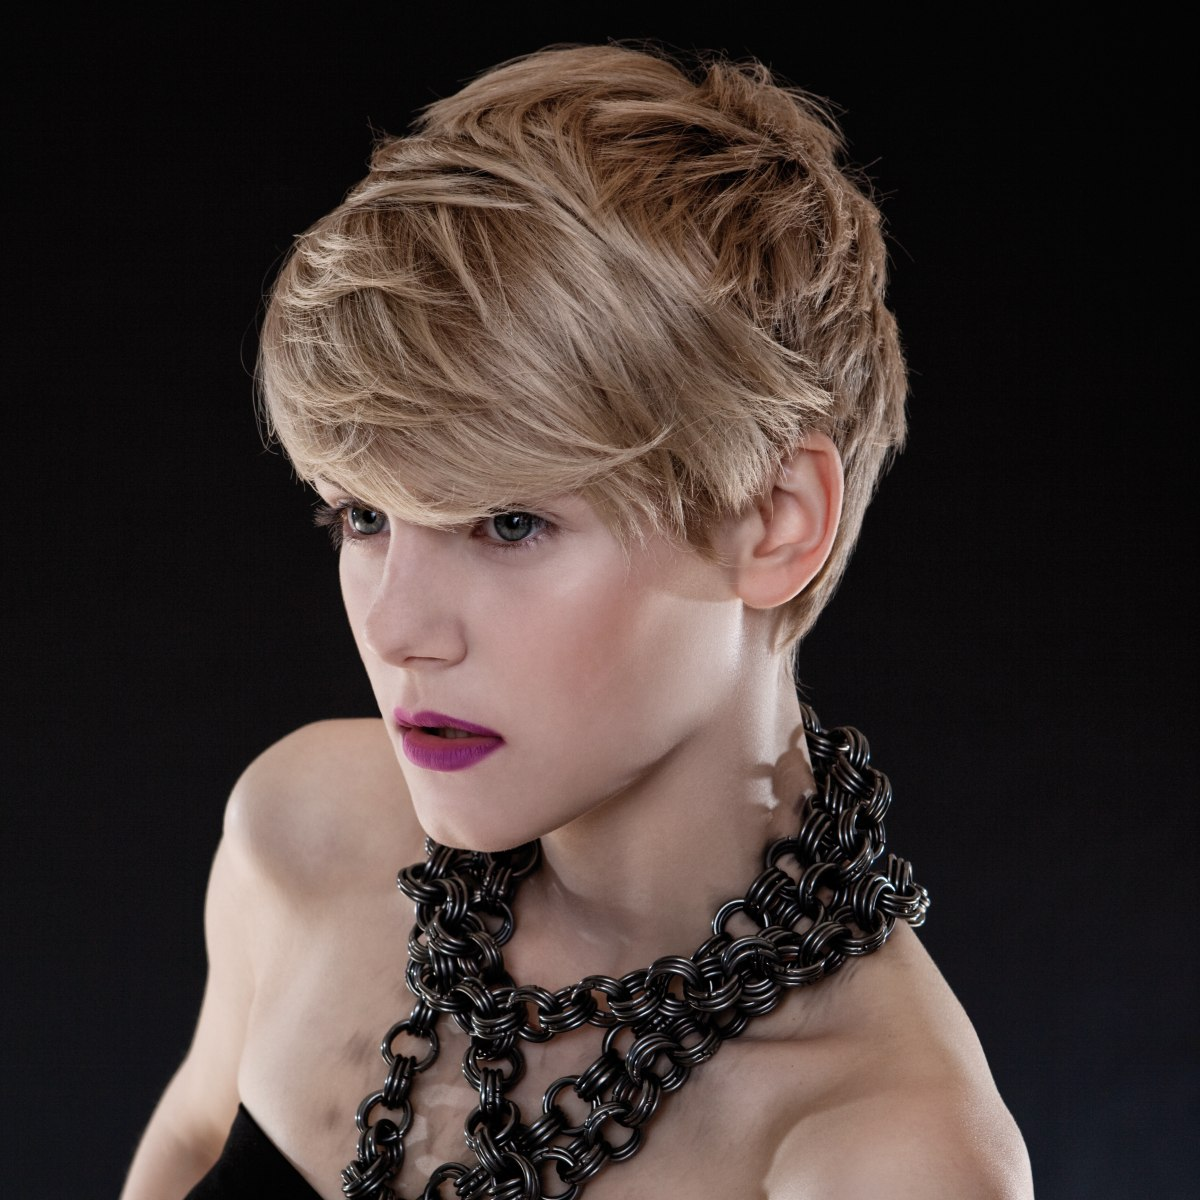 Haircut Styles: Modern Hairstyles For Short Blond Hair, From Scandinavia